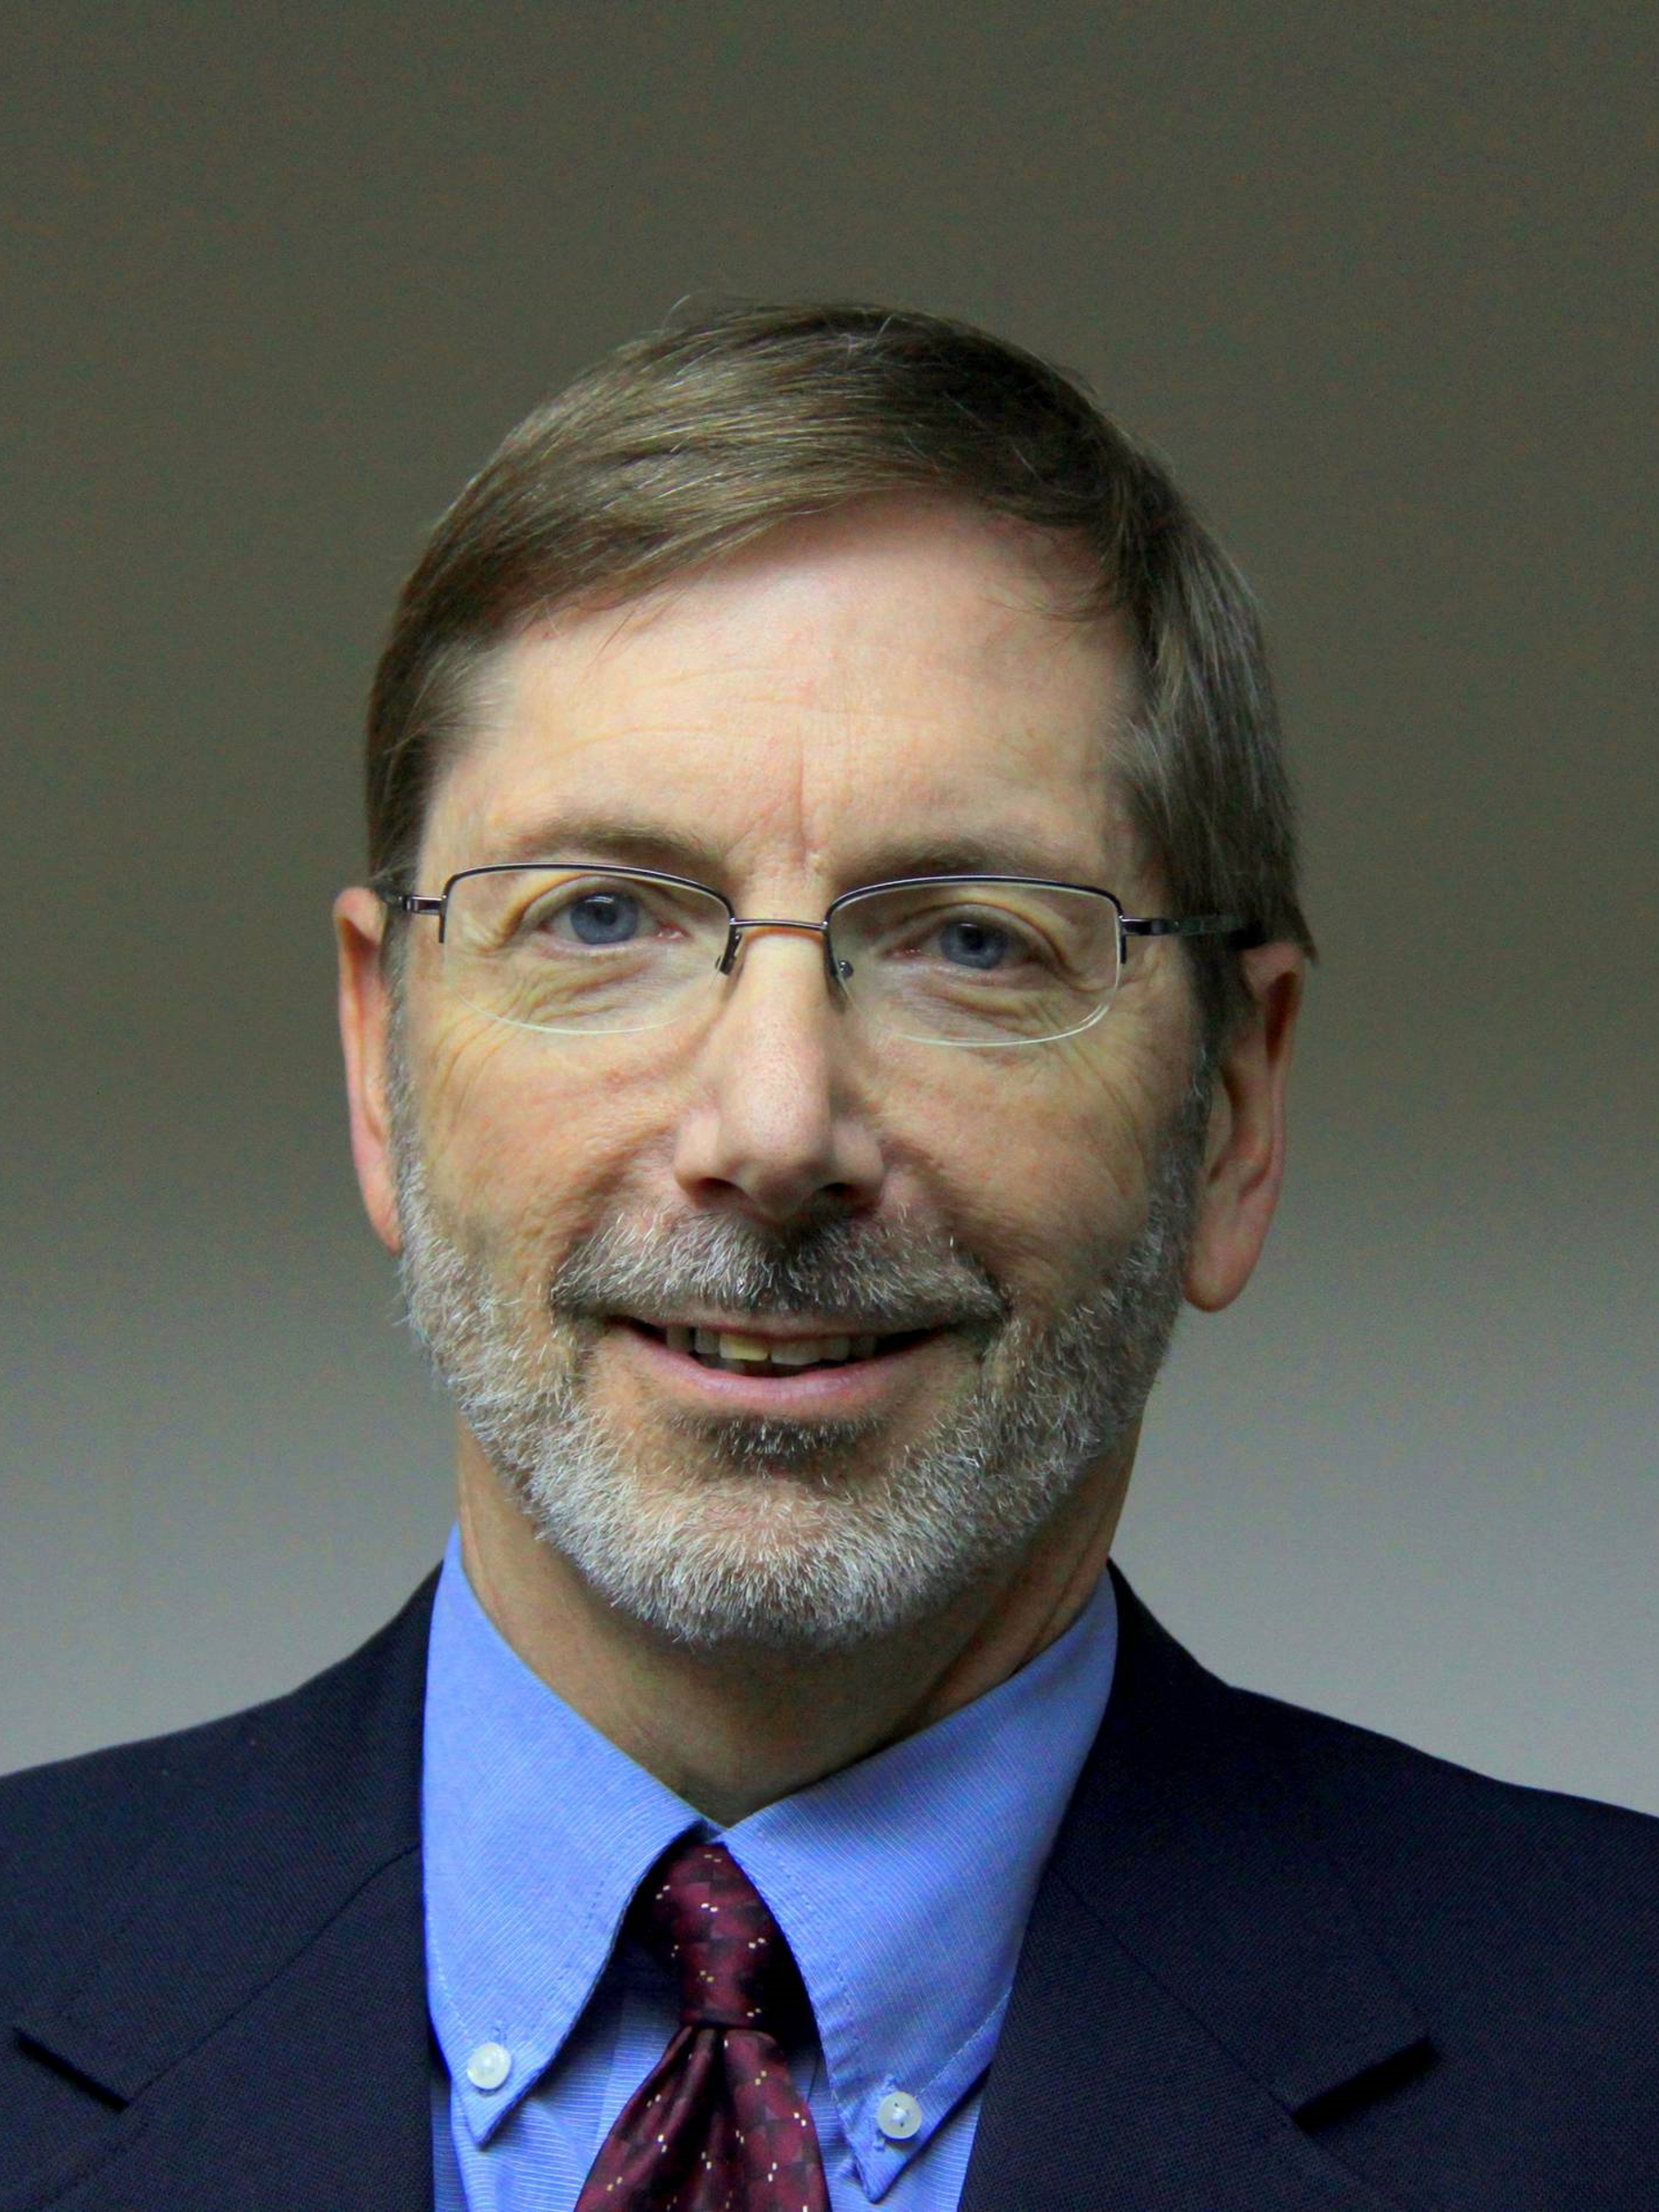 Dr. Glen L. Thompson